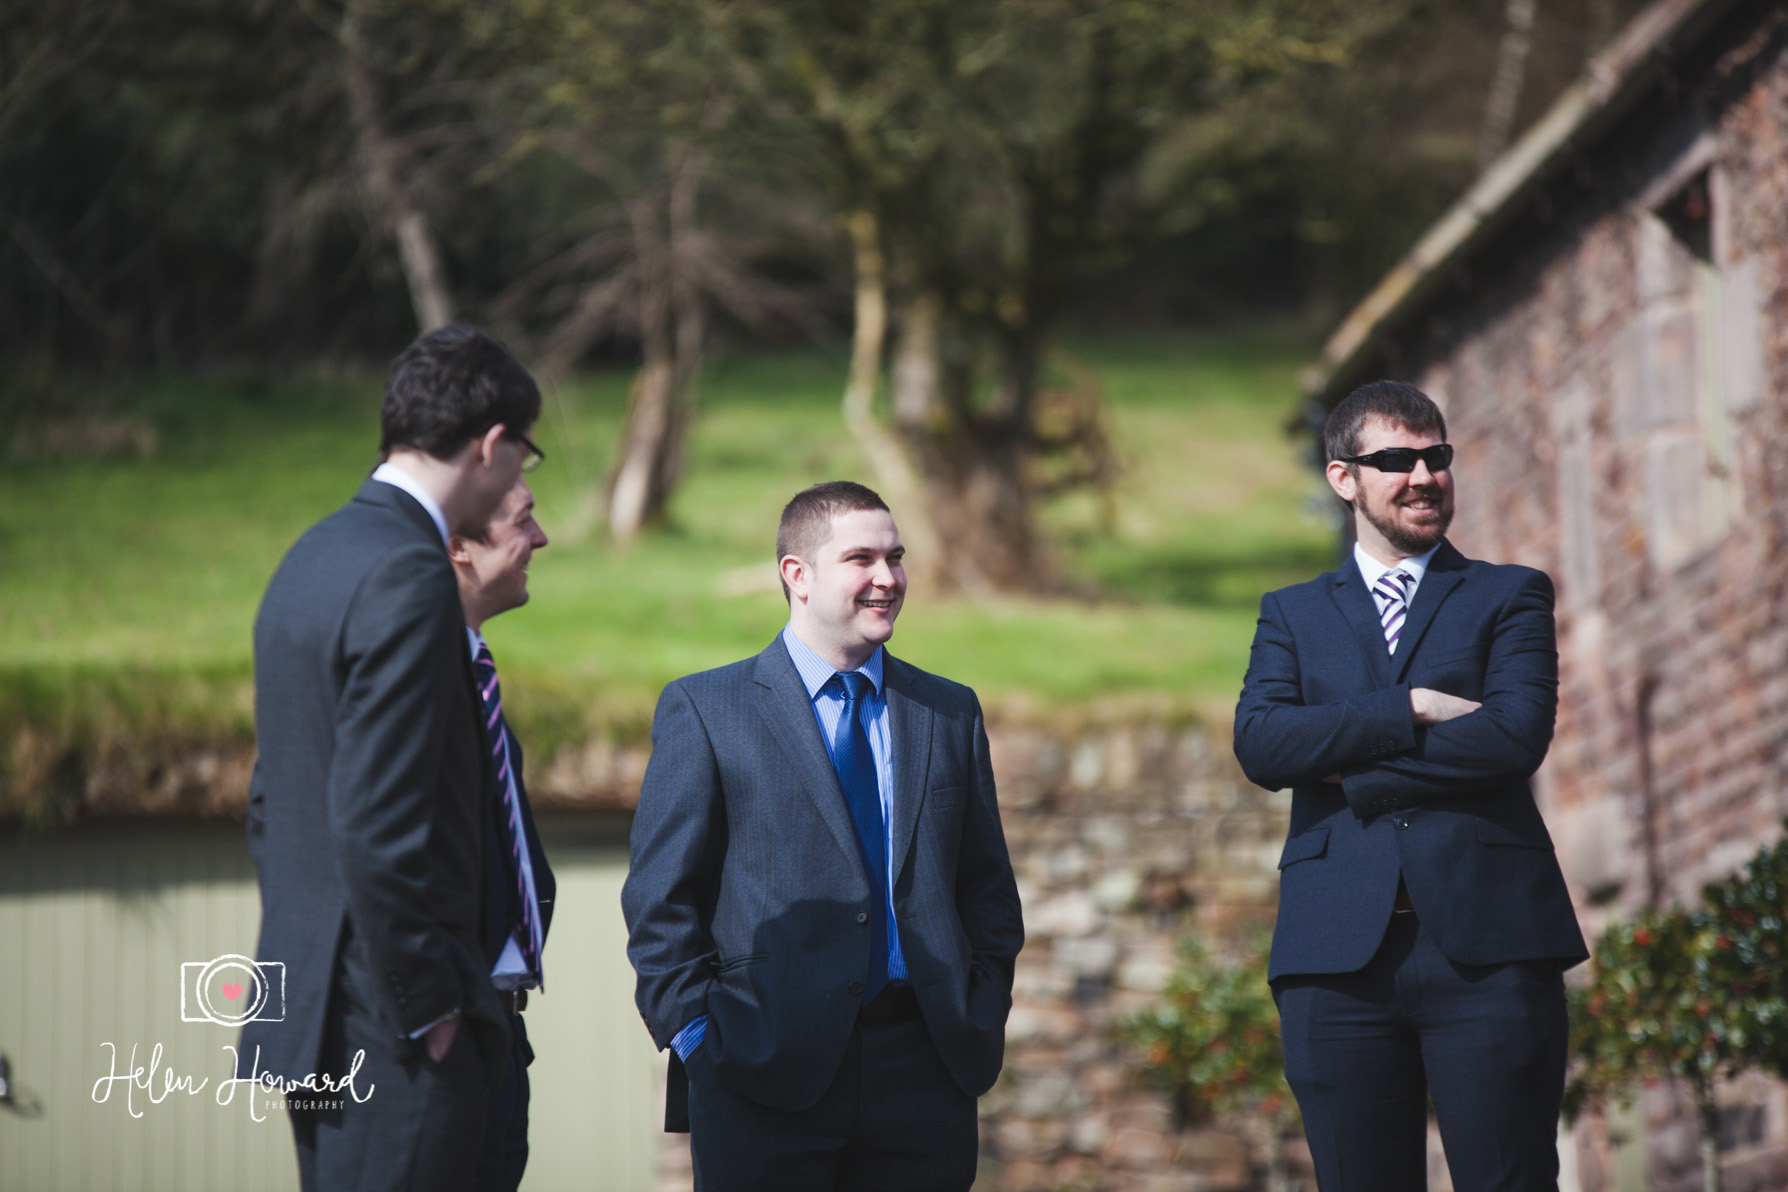 Wedding Guests at The Ashes Venue